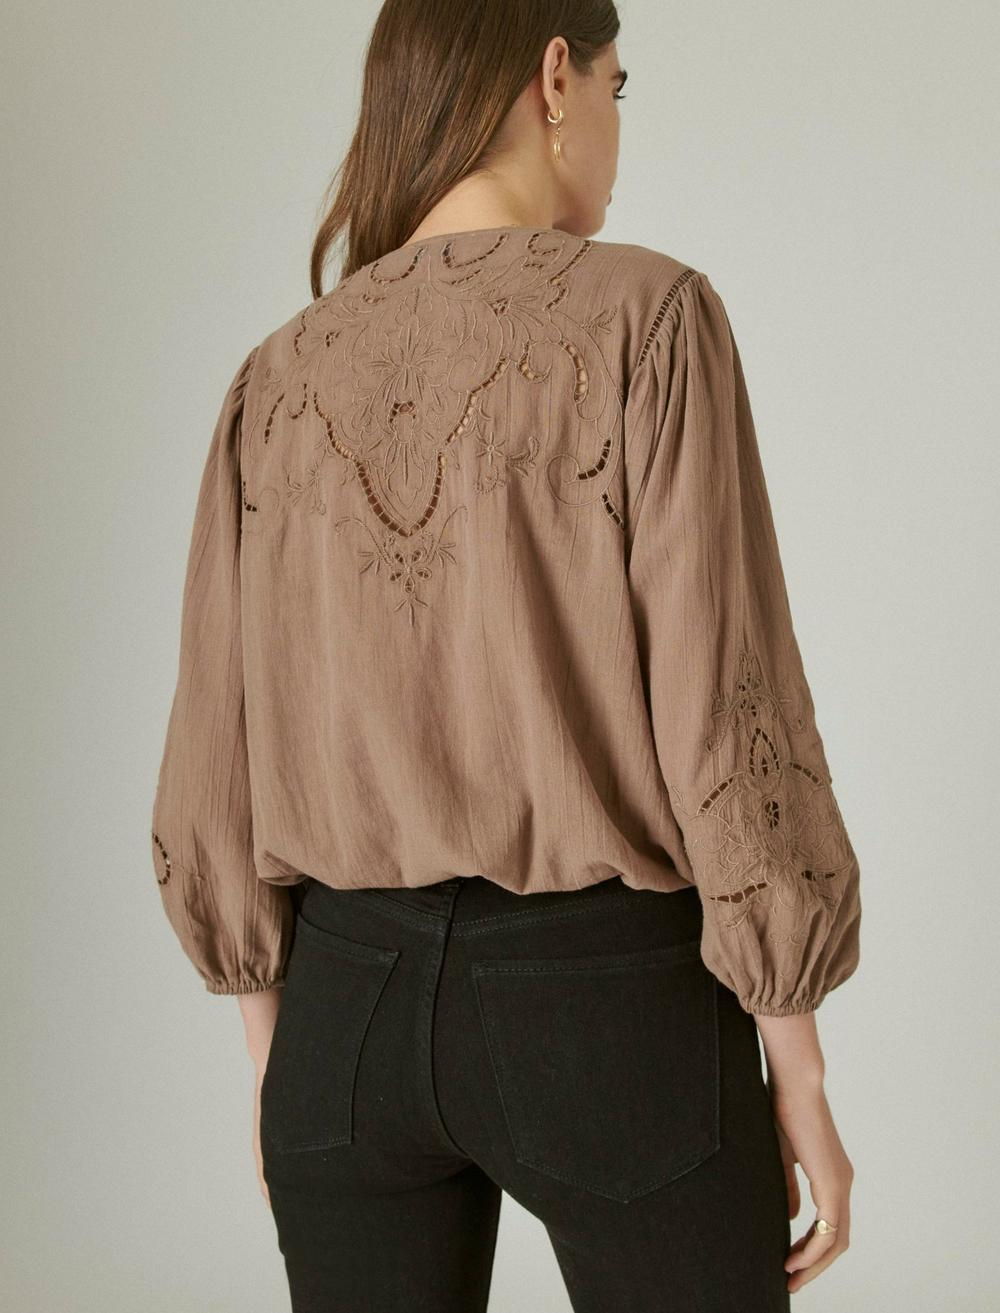 EMBROIDERED PEASANT BLOUSE, image 4